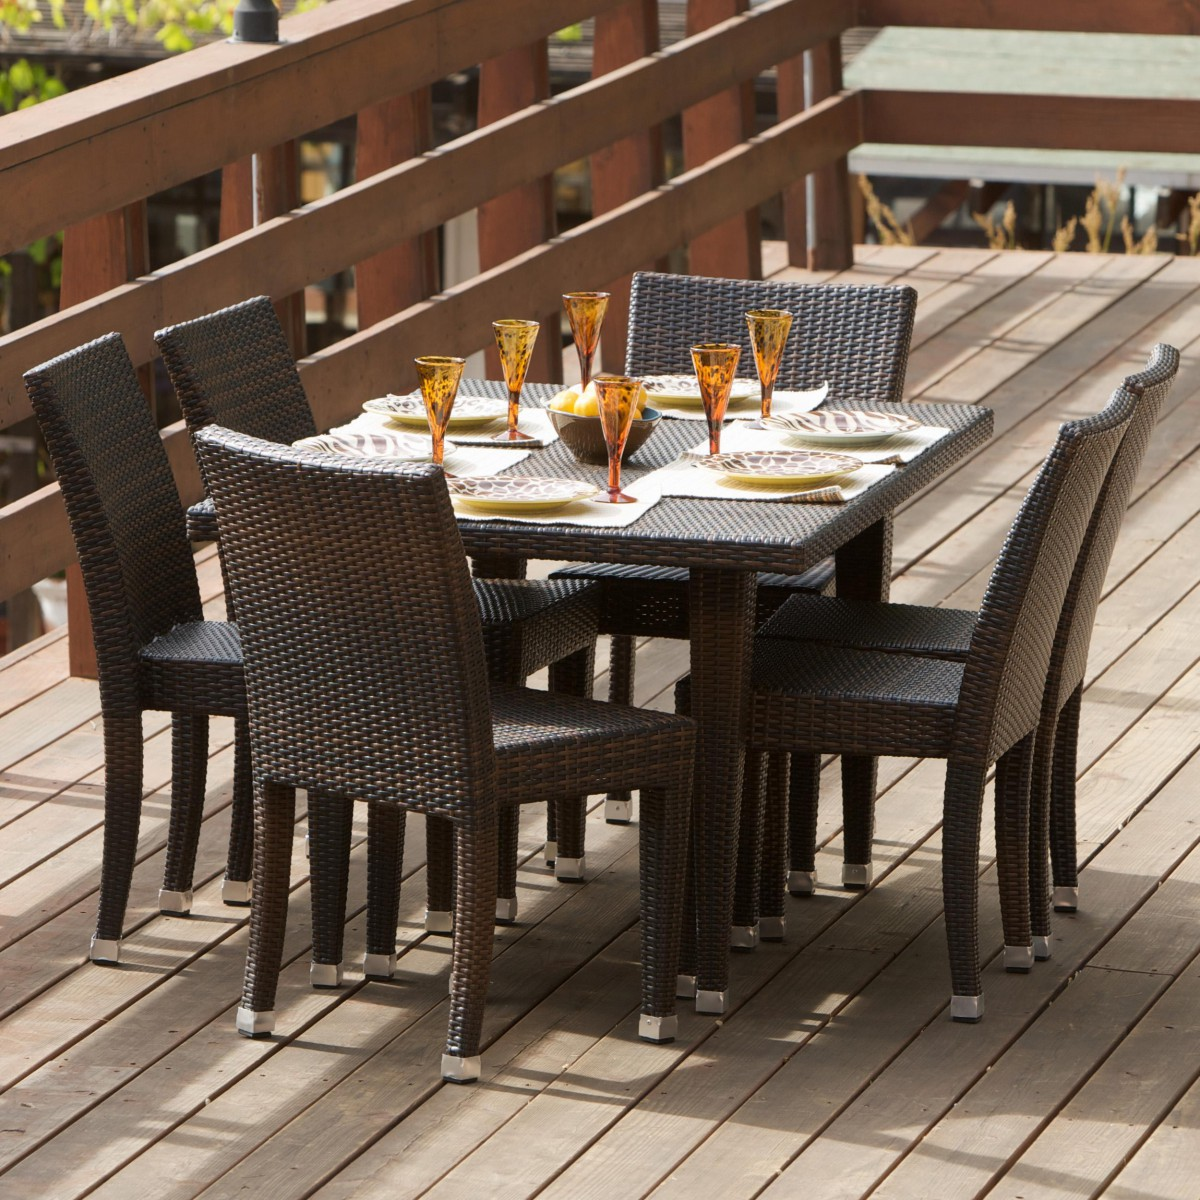 All Weather Wicker 7 Piece Outdoor Patio Dining Set  : all weather wicker 7 piece outdoor patio dining set 1200x1200 from www.patiotable.co size 1200 x 1200 jpeg 350kB